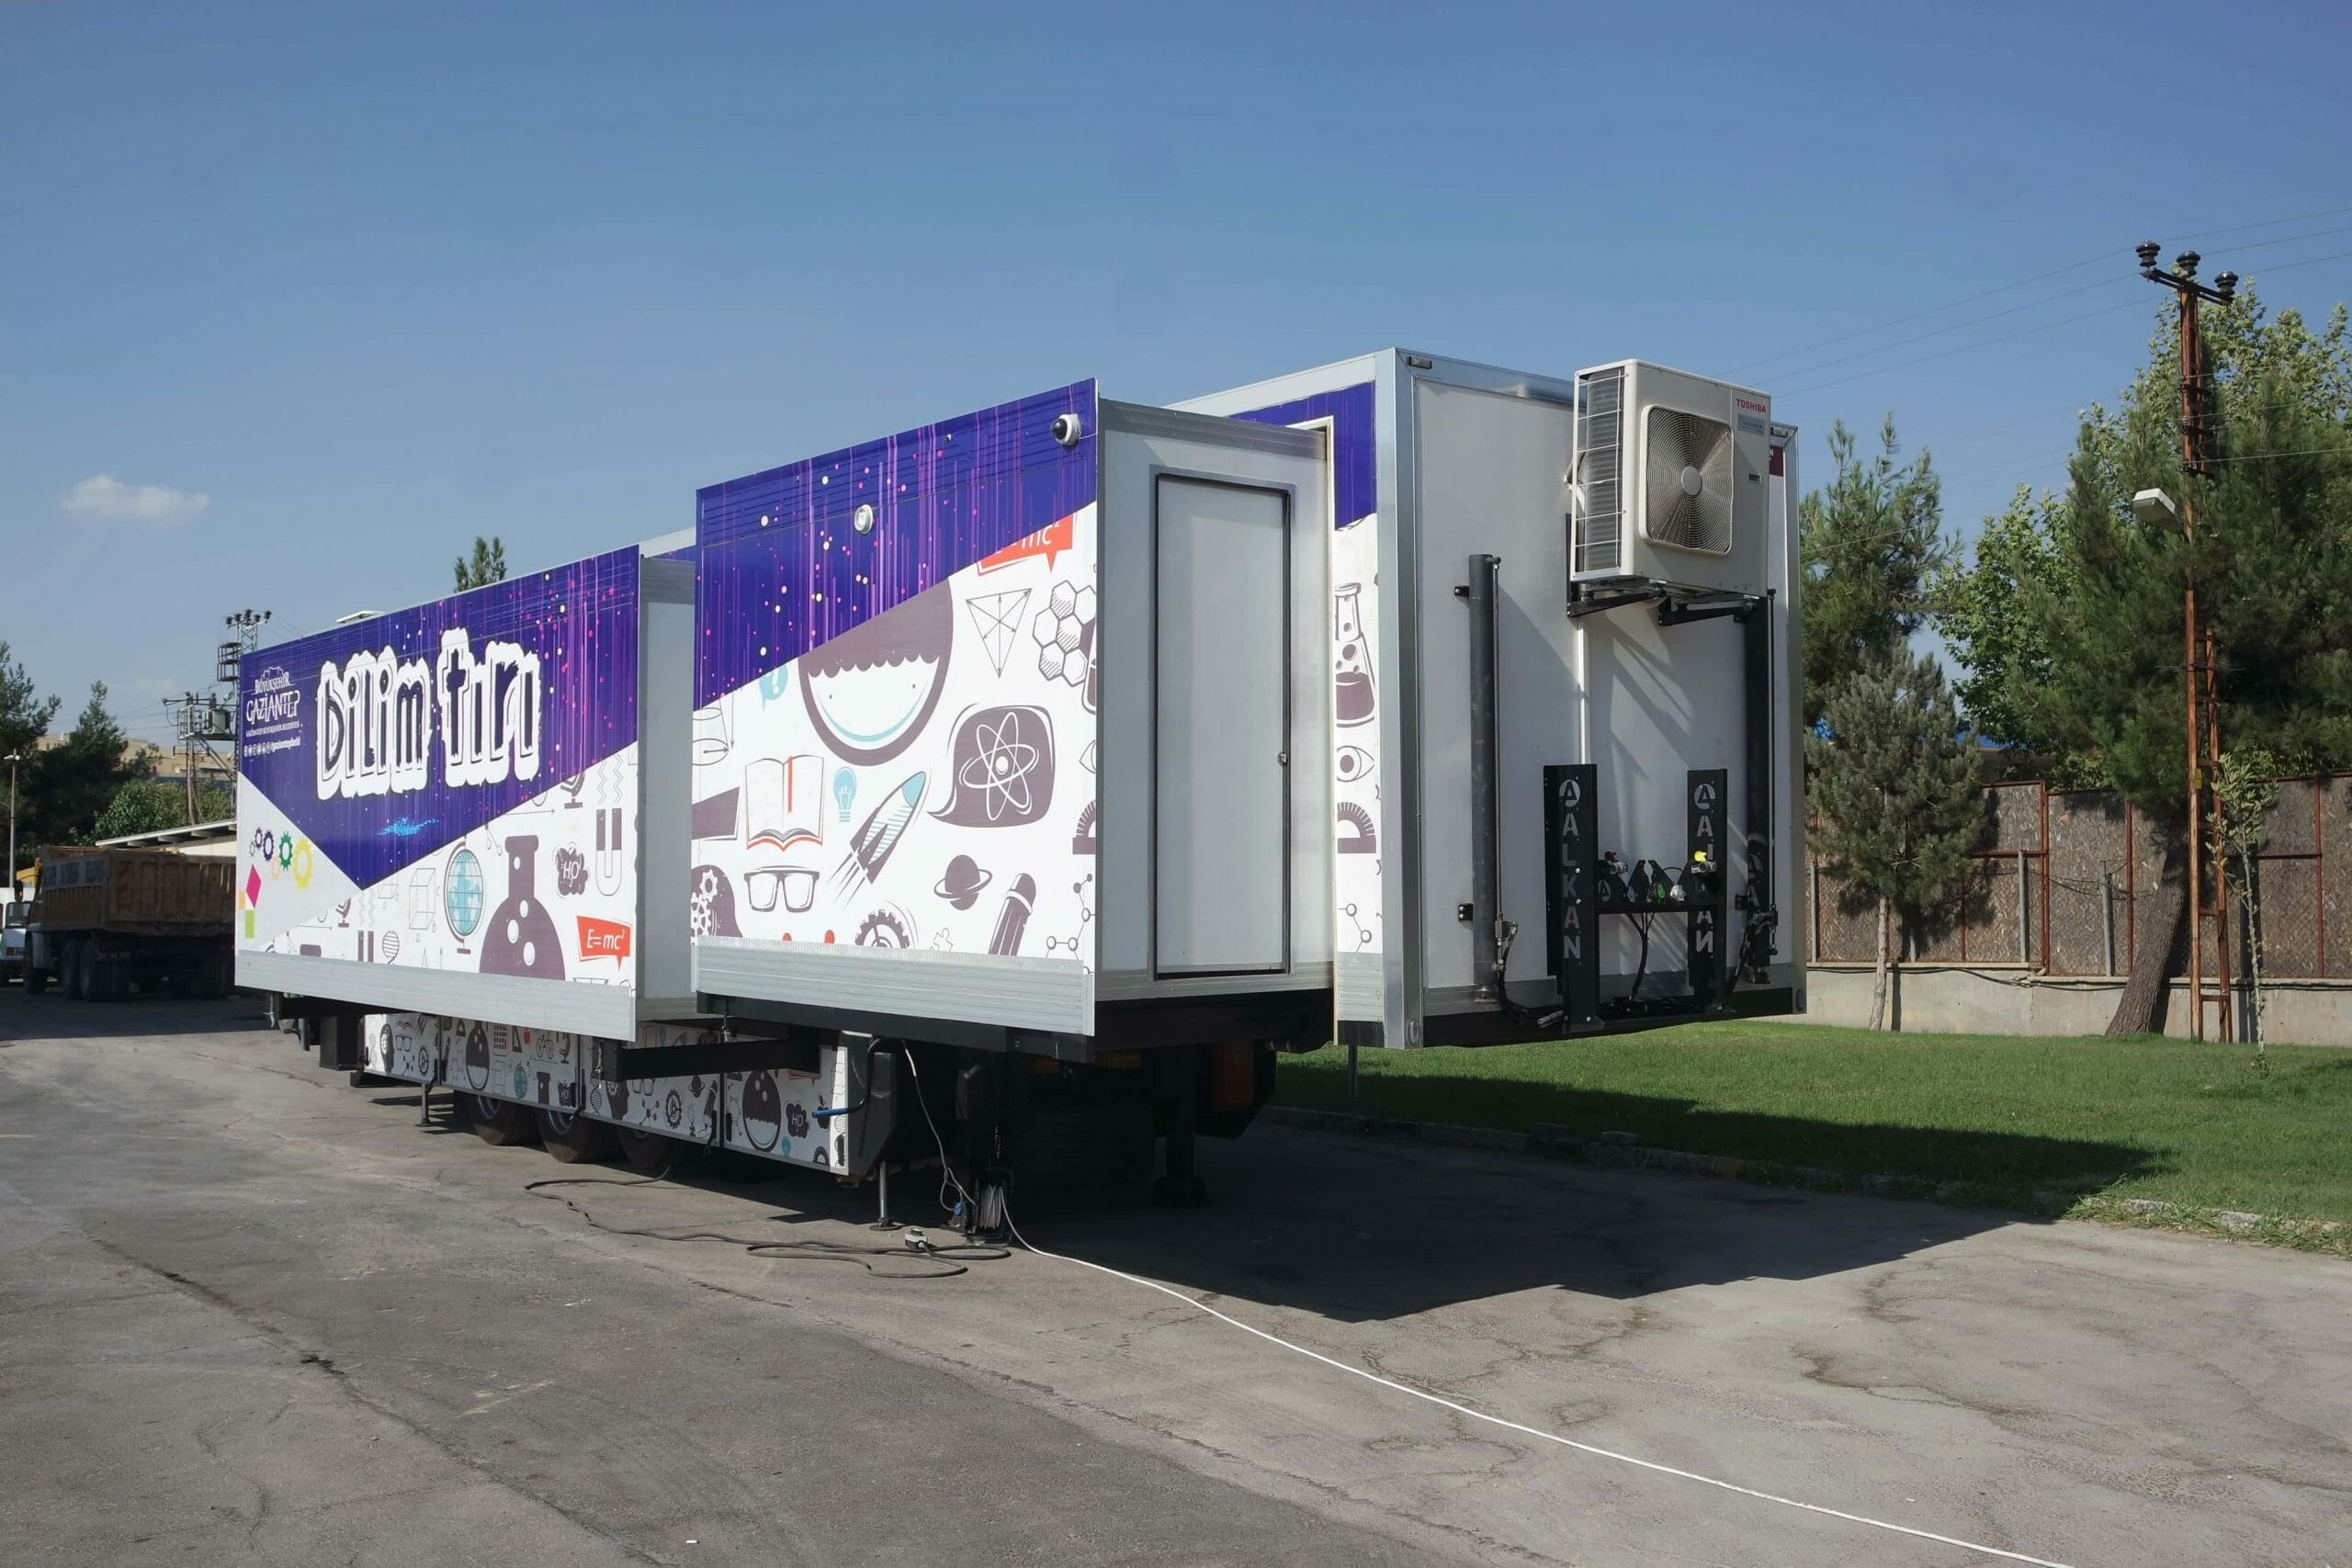 mobile-education-trailer-vehicle-5-scaled.jpg